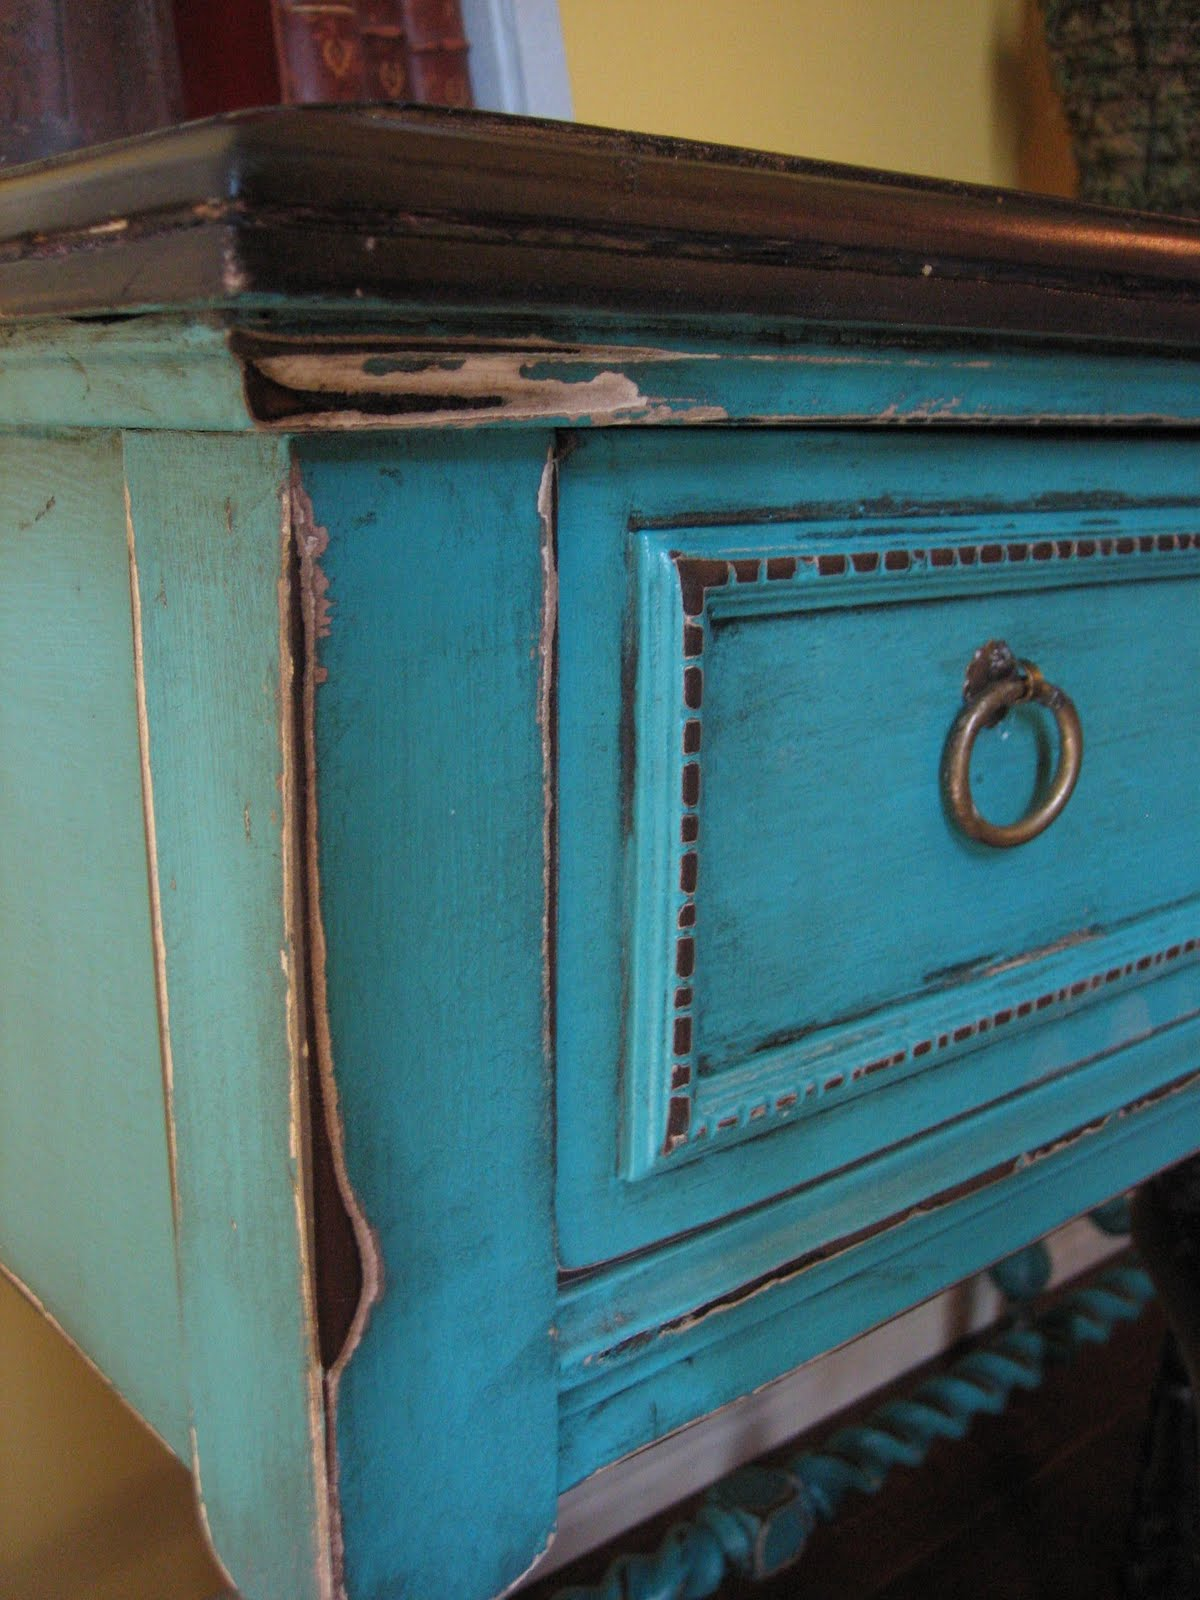 Uncategorized Turquoise Shabby Chic Furniture european paint finishes turquoise accent table rustic painted furniture spanish old world euro french country cottage farmhouse shabby chic eclectic beach house home south